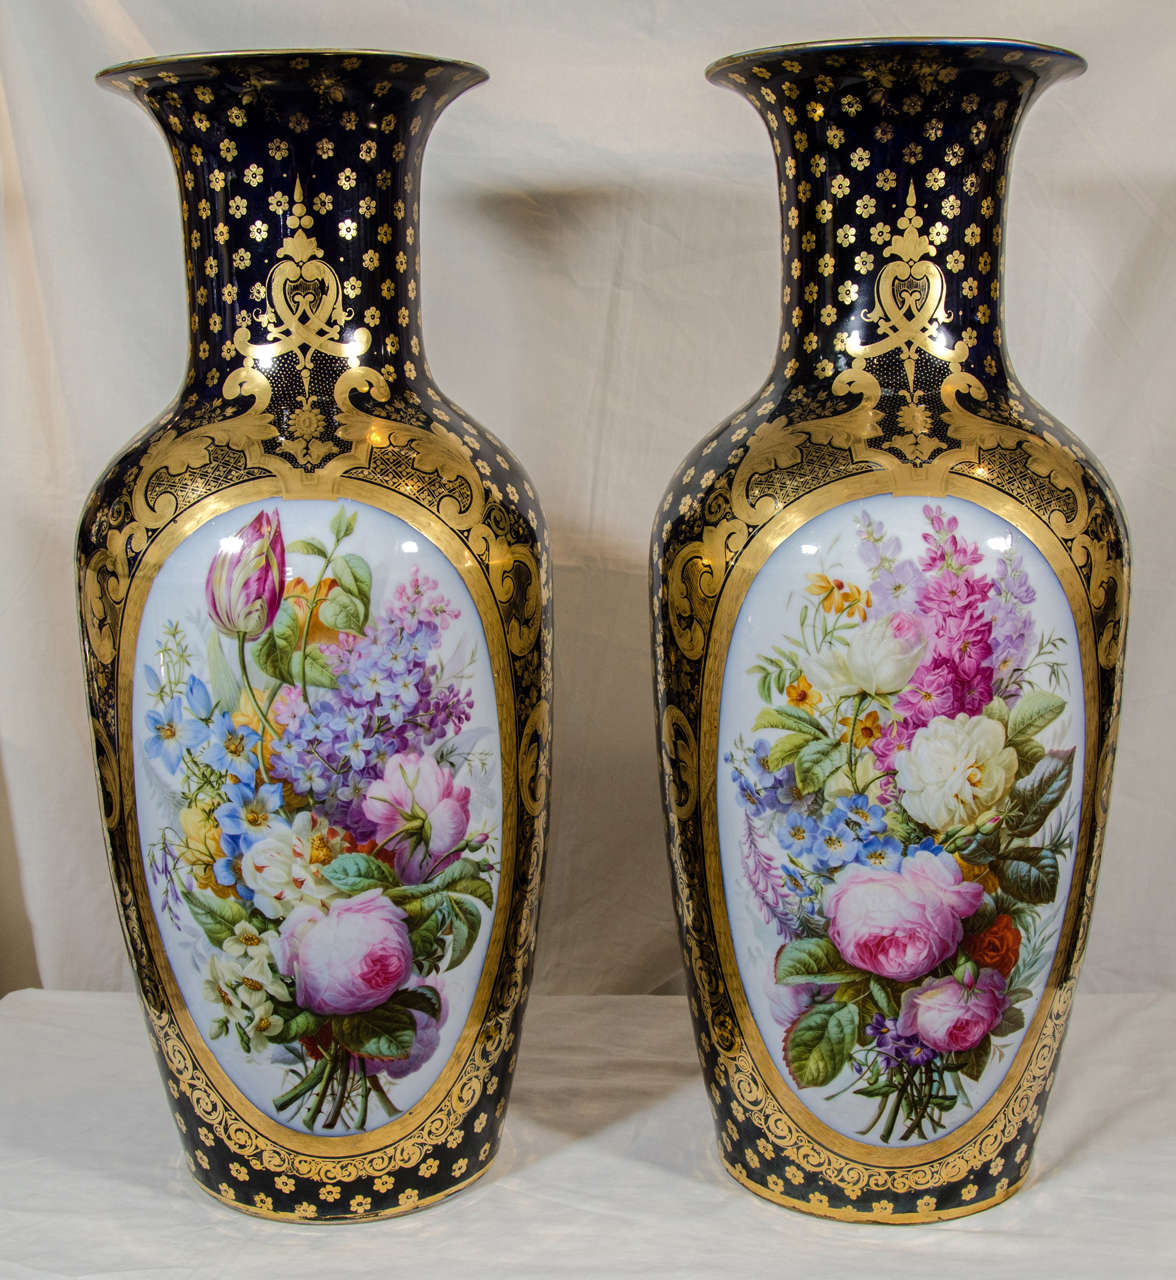 Pair Large Paris Porcelain Vases Hand-Painted with Flowers and Blue Ground For Sale 3